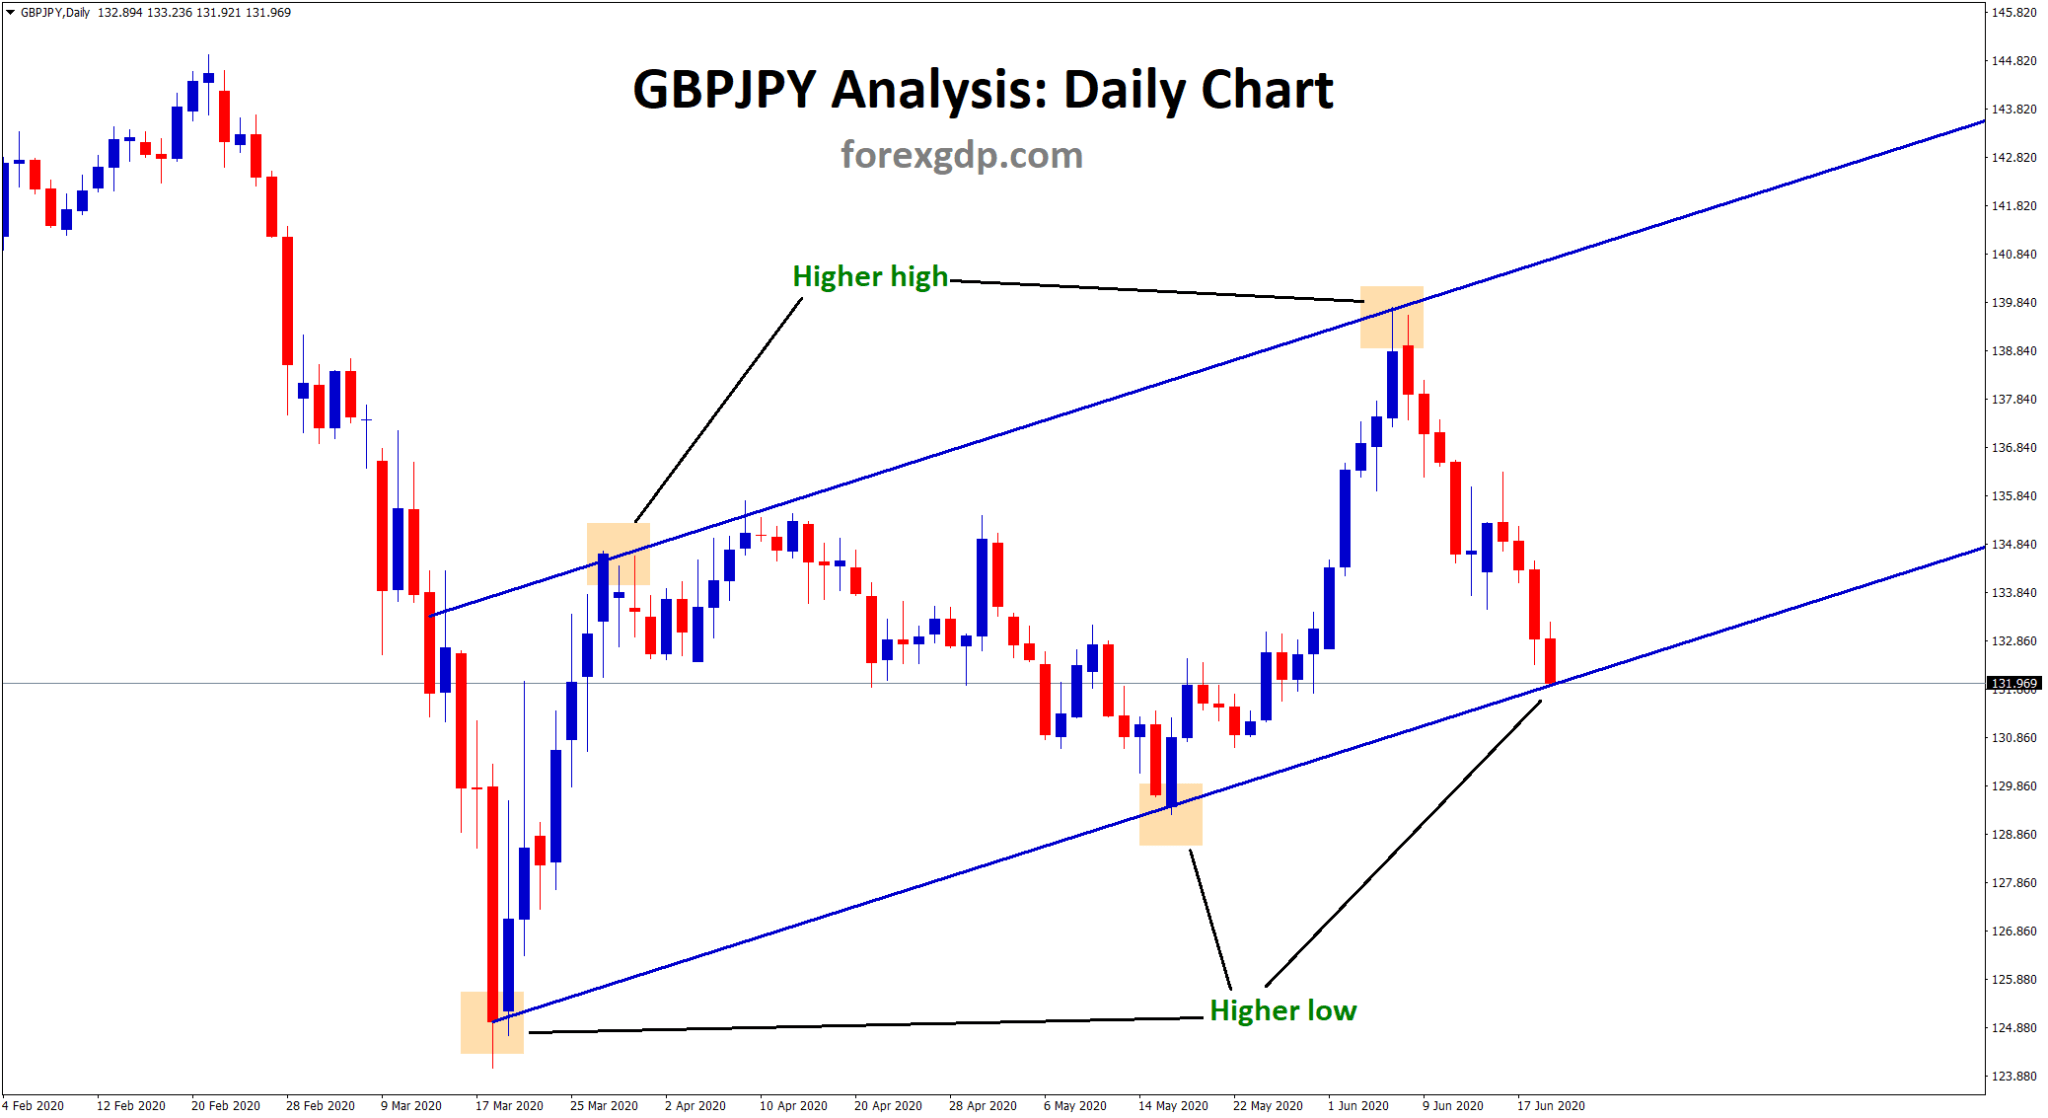 GBPJPY reached the bottom zone of the Up Trendline